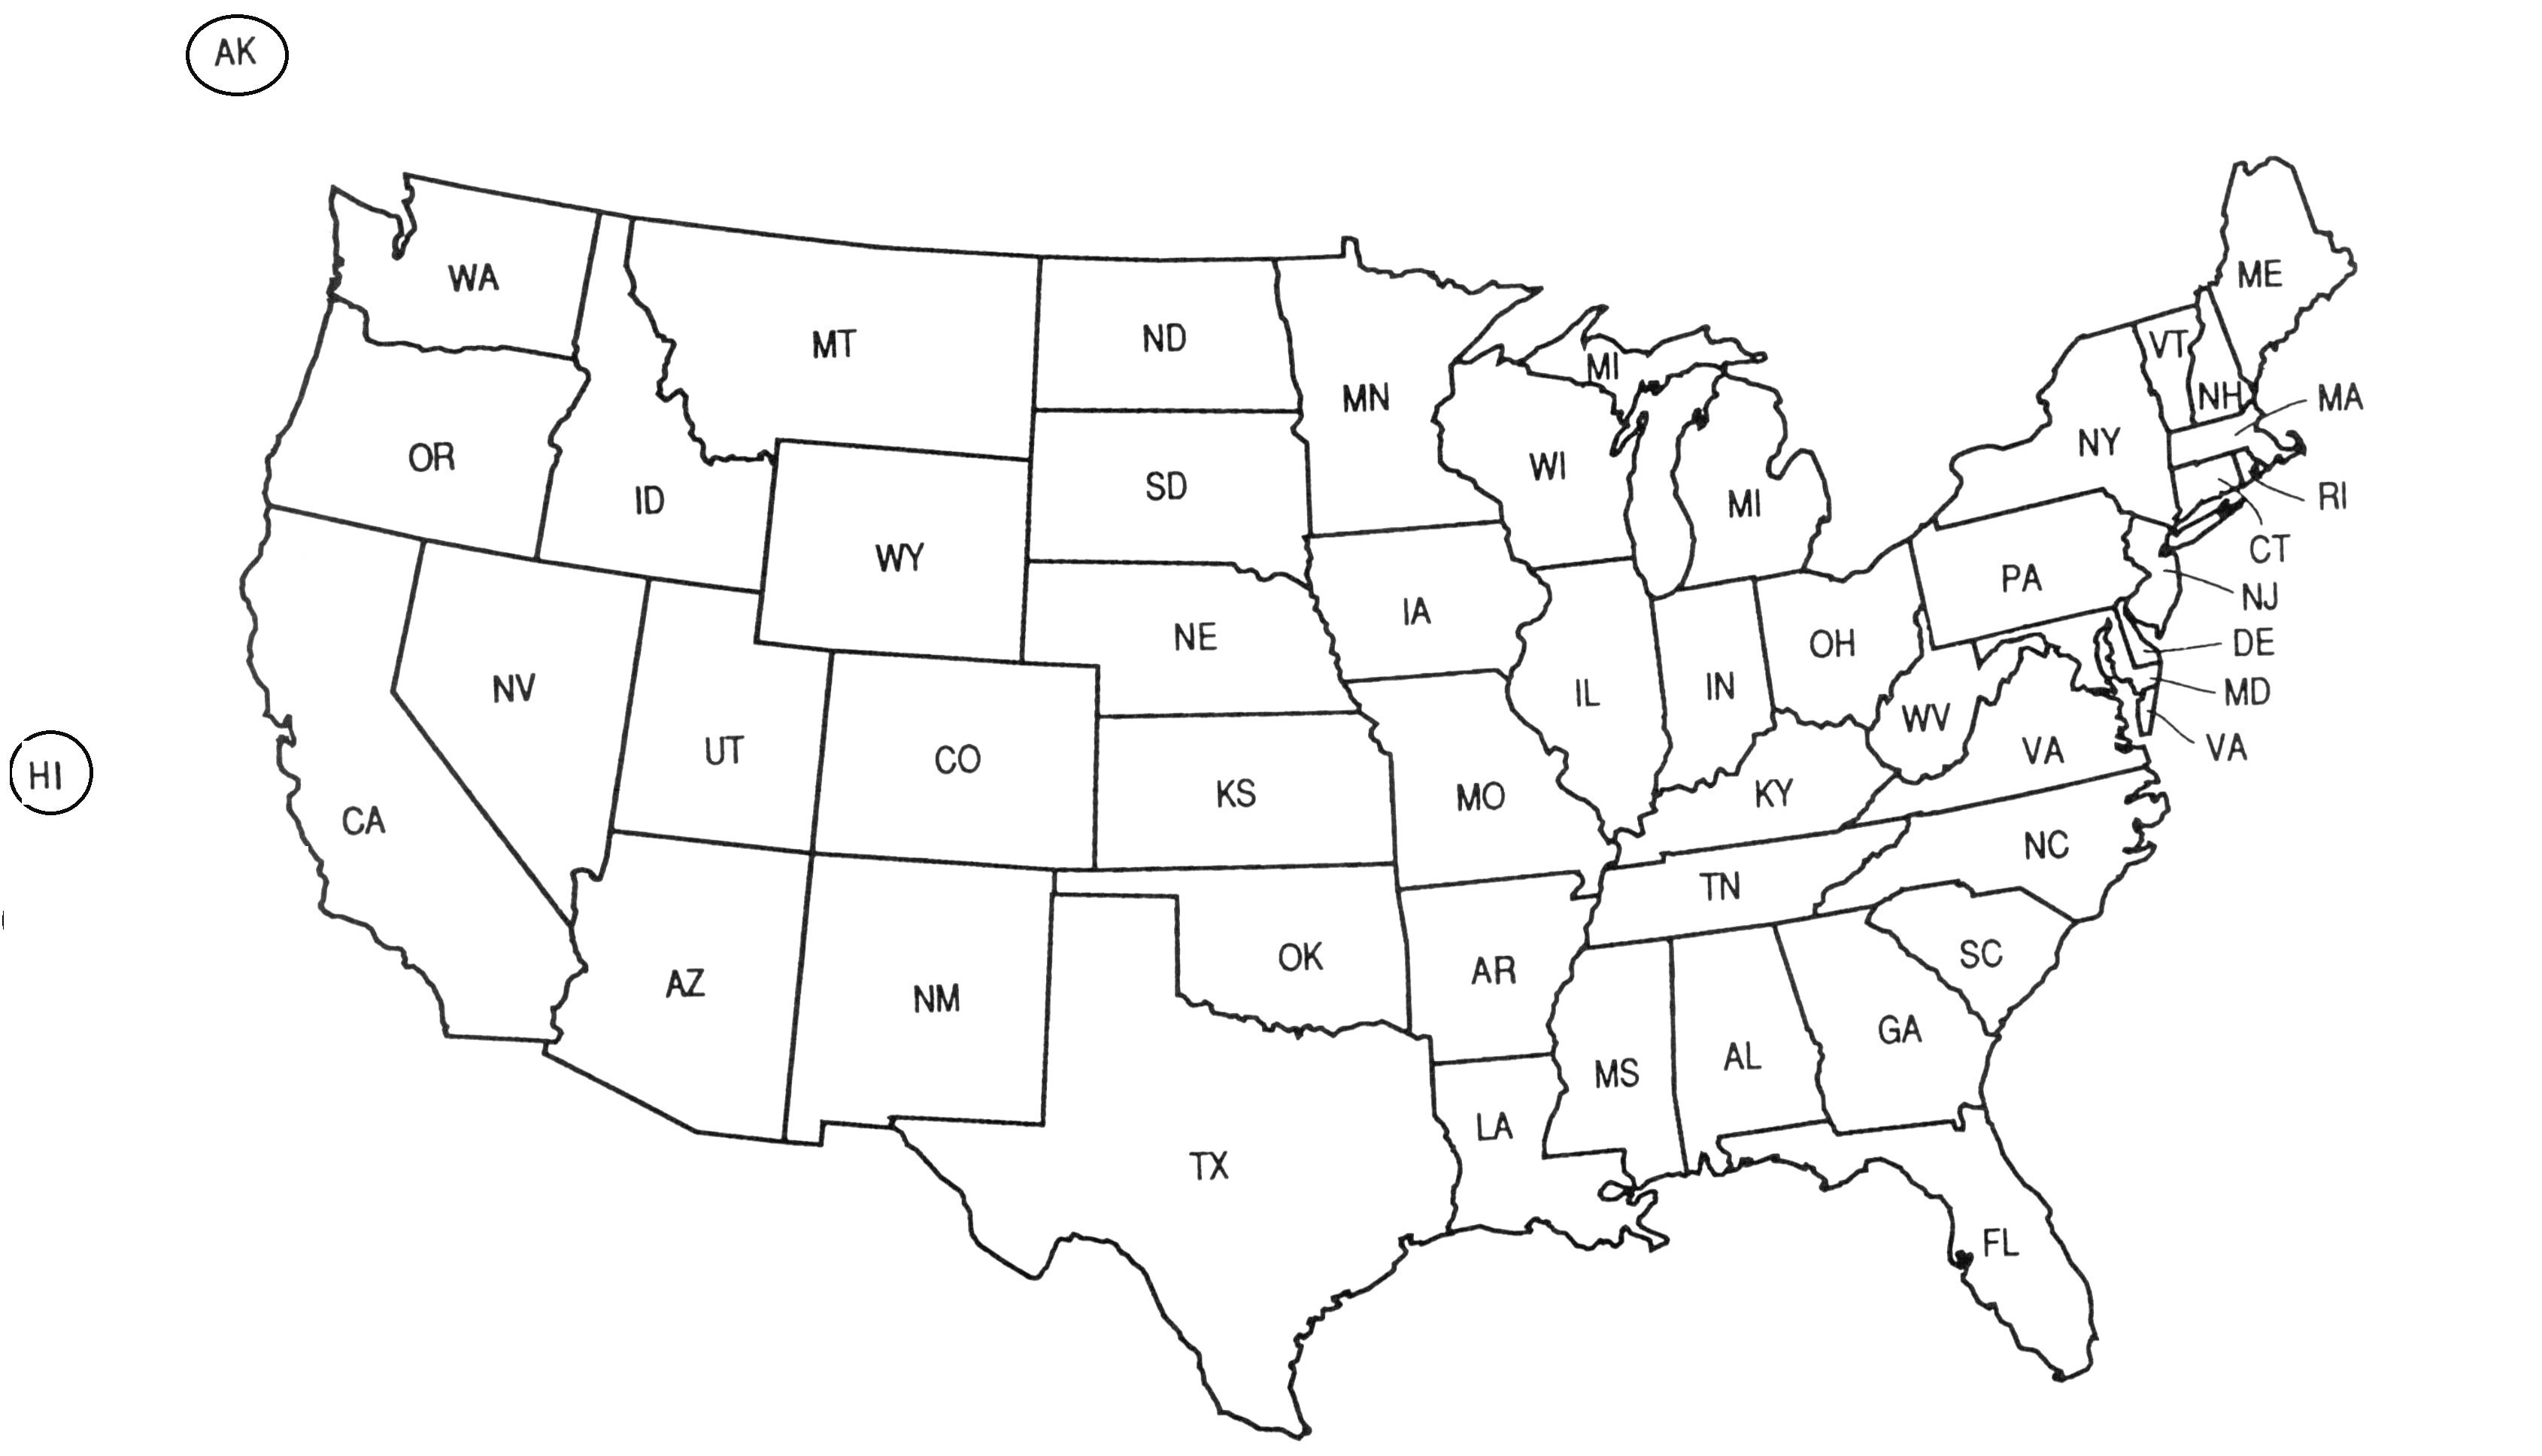 United States Map Black And White United States Map Outline Black And Whit #114530   PNG Images   PNGio